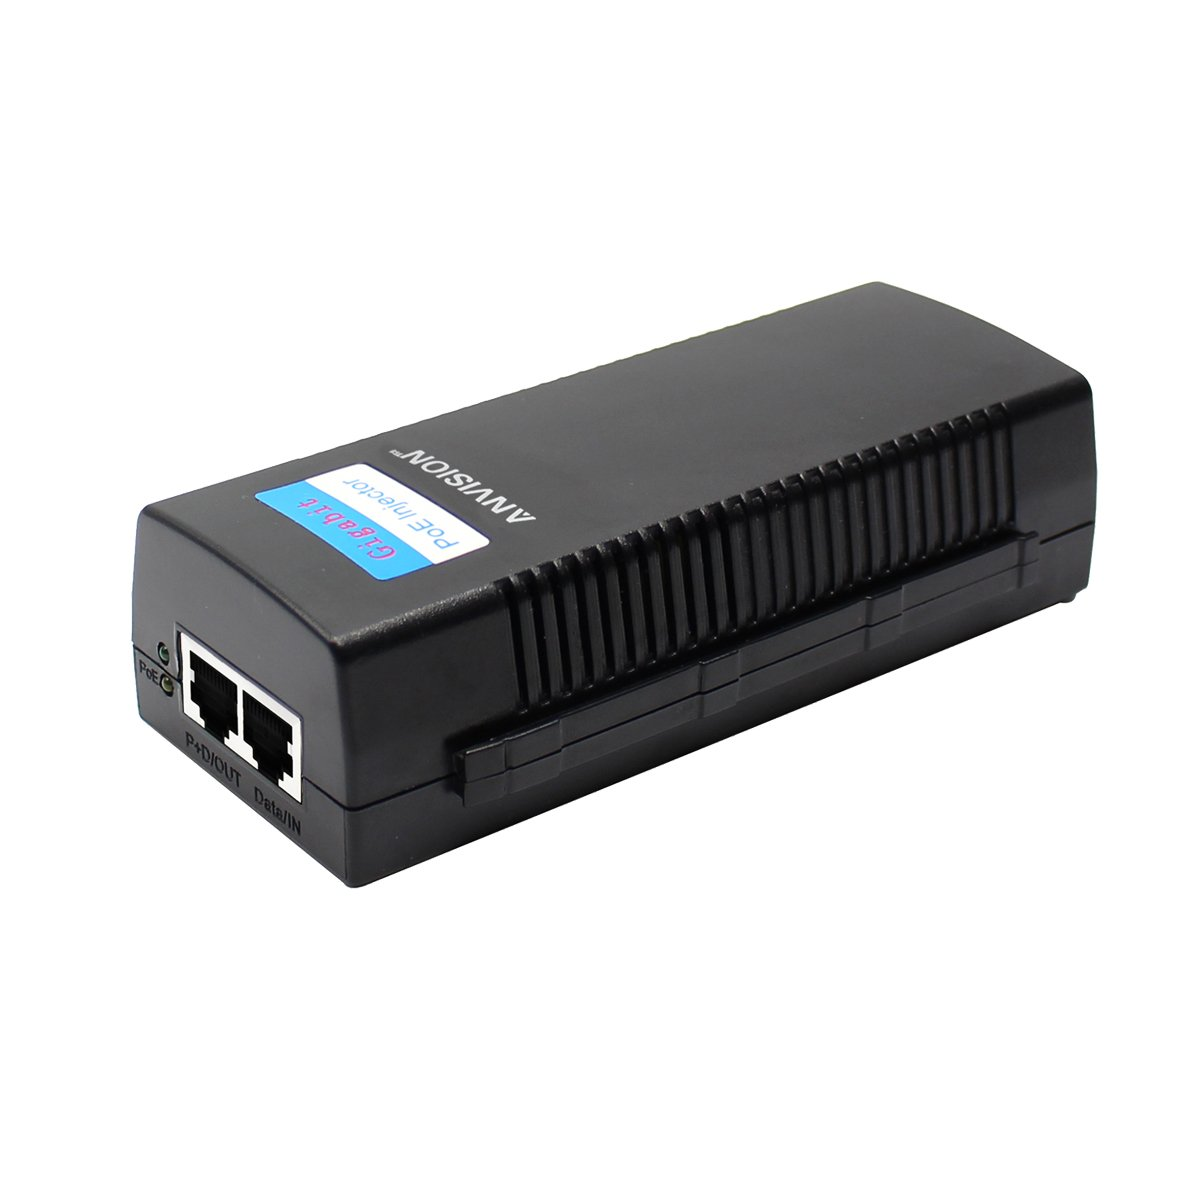 ANVISION 48V 0.8A Gigabit PoE Injector Power Supply Ethernet Adapter with AC Cord IEEE 802.3af/at Compliant 10/100/1000Mbps for IP Voip Phones, Cameras, AP and more